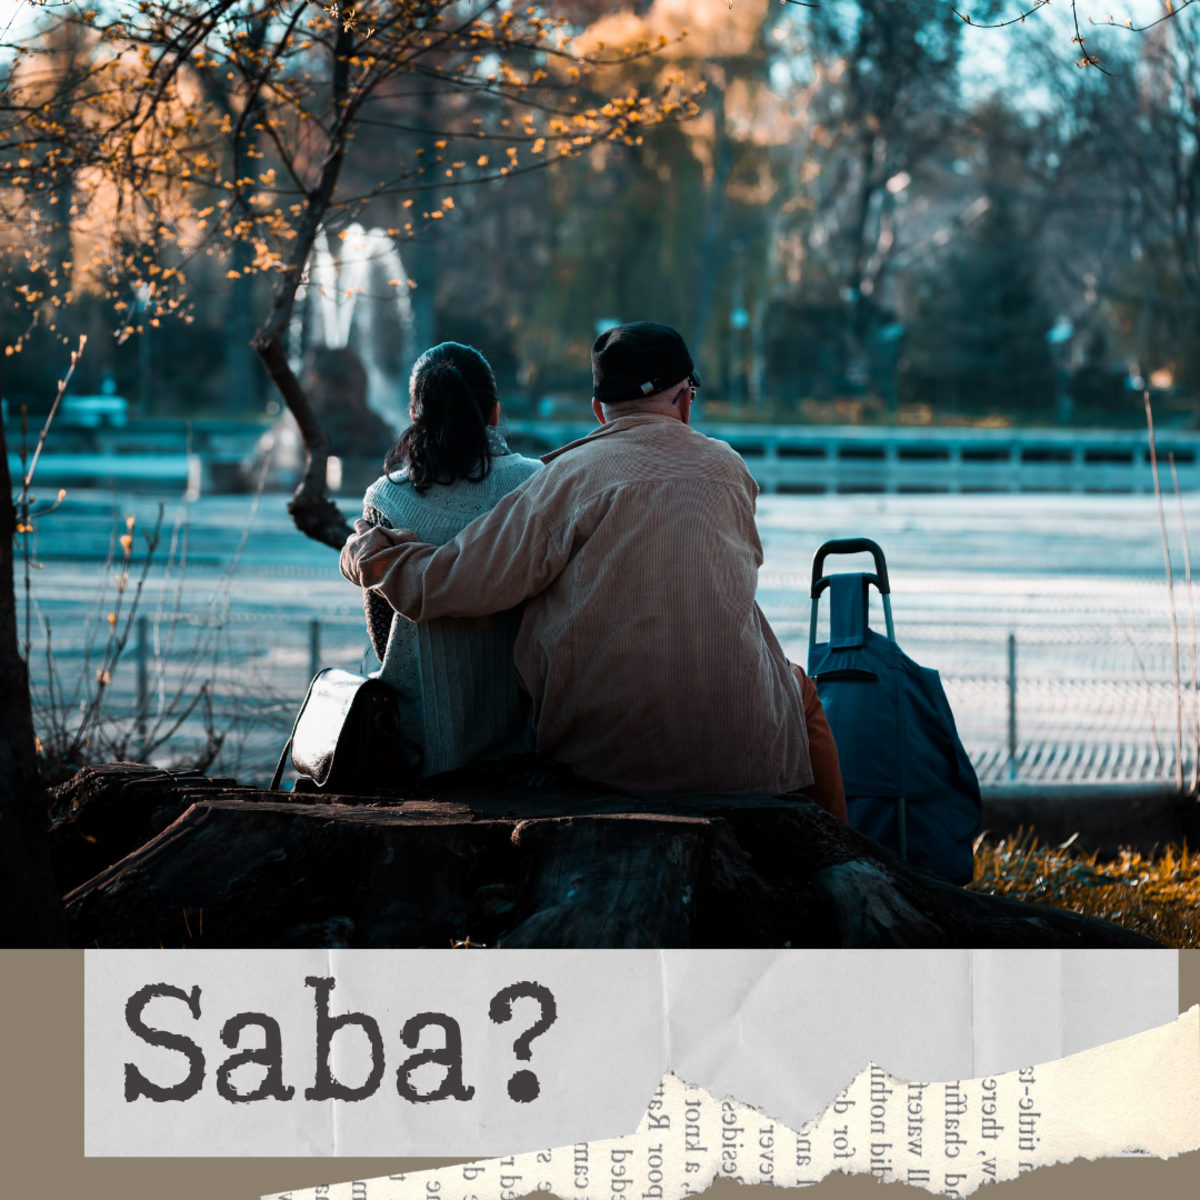 Are you a Saba?